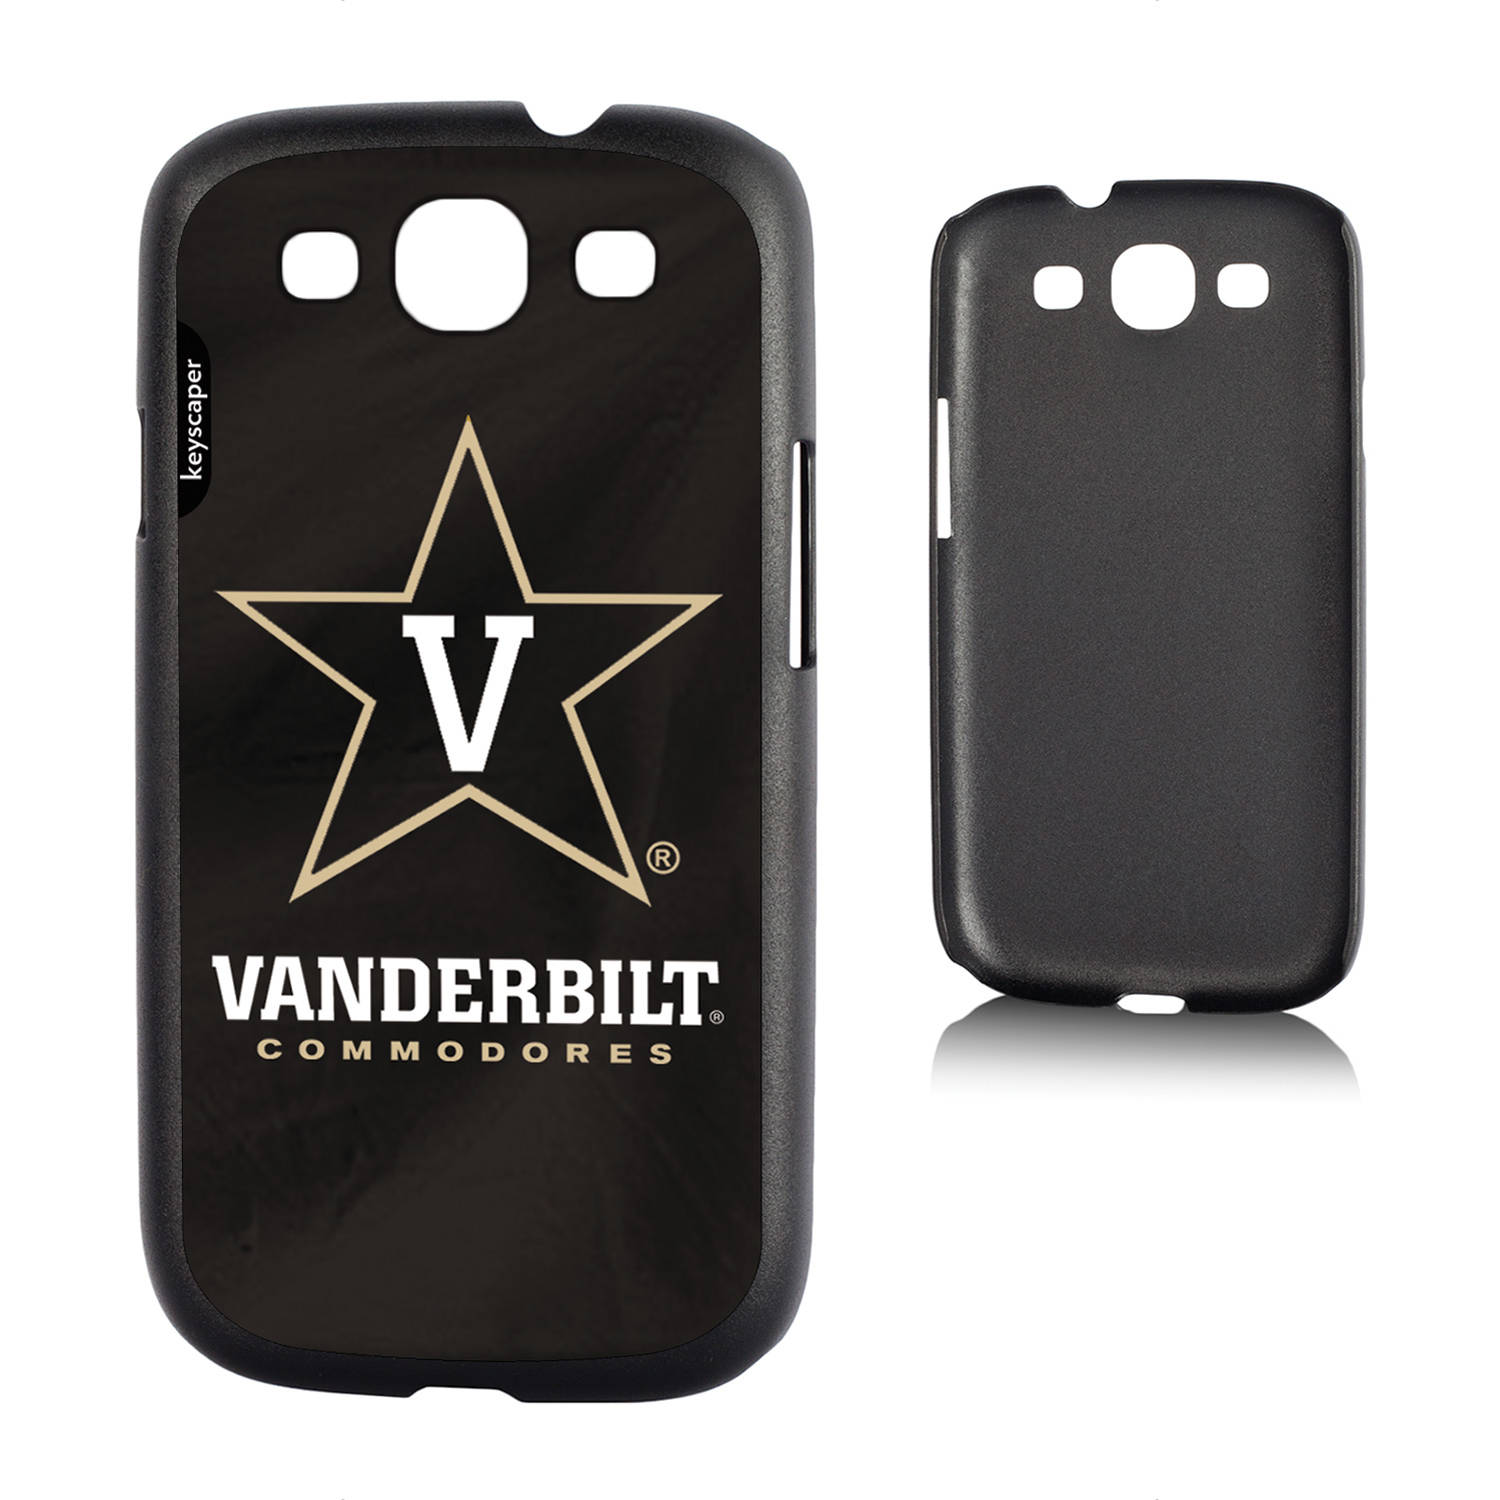 Vanderbilt Commodores Galaxy S3 Slim Case